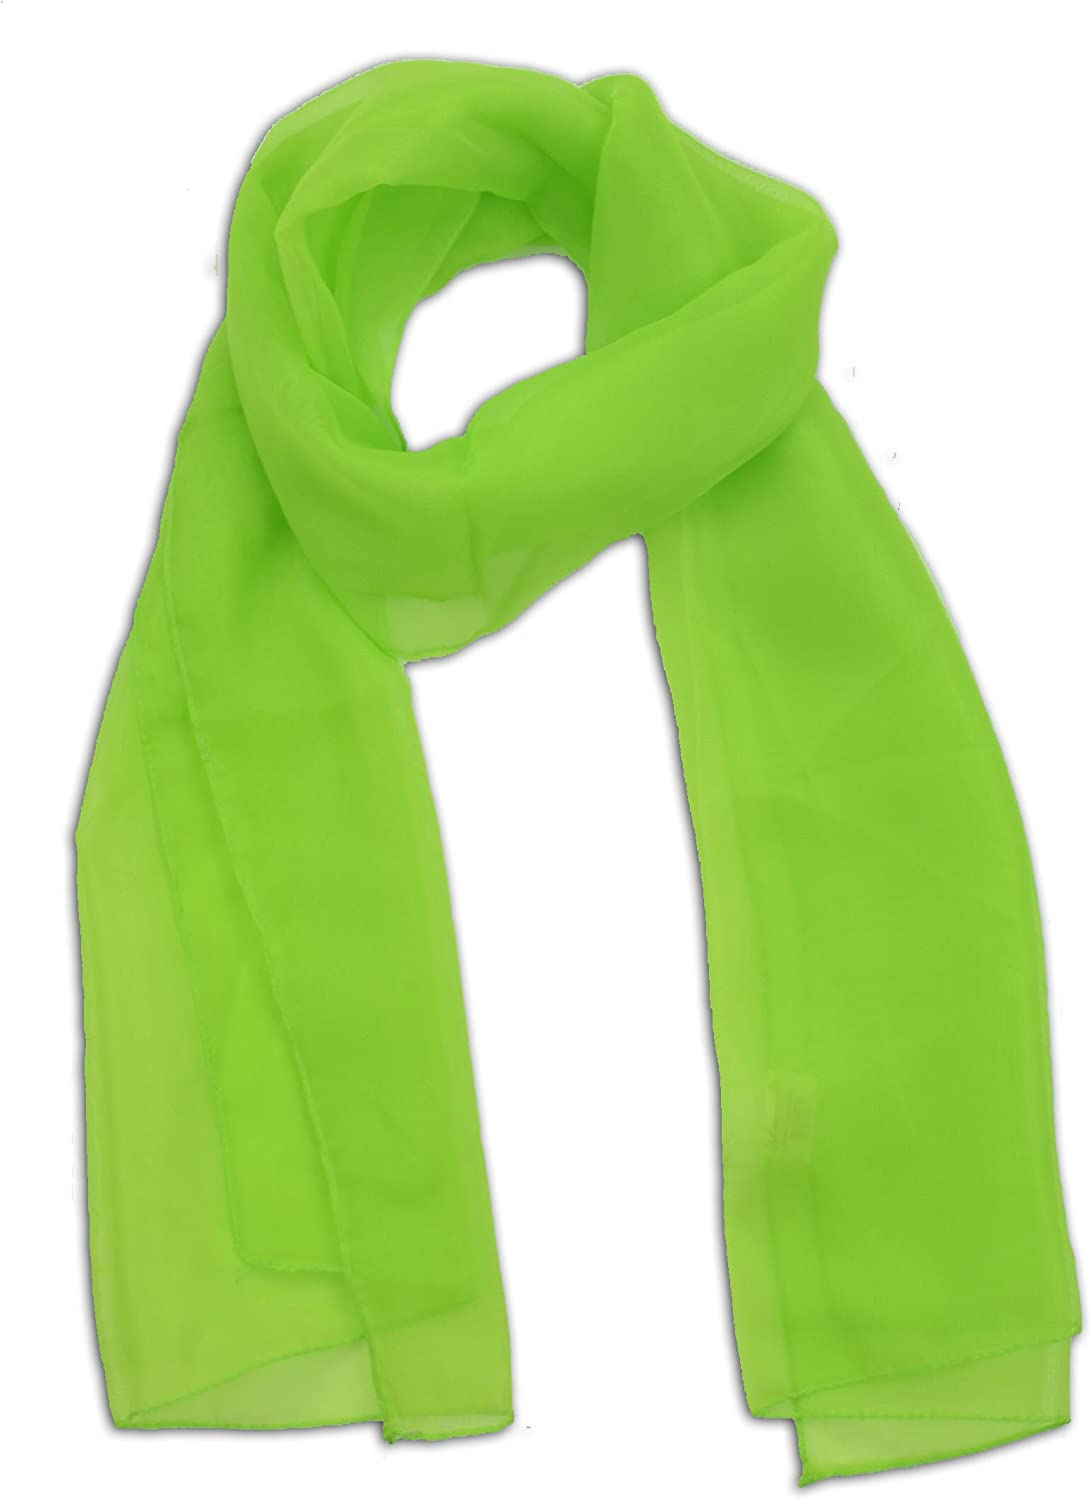 LJL Design Chiffon Scarf Oblong (Lime) at  Women's Clothing store: Fashion Scarves